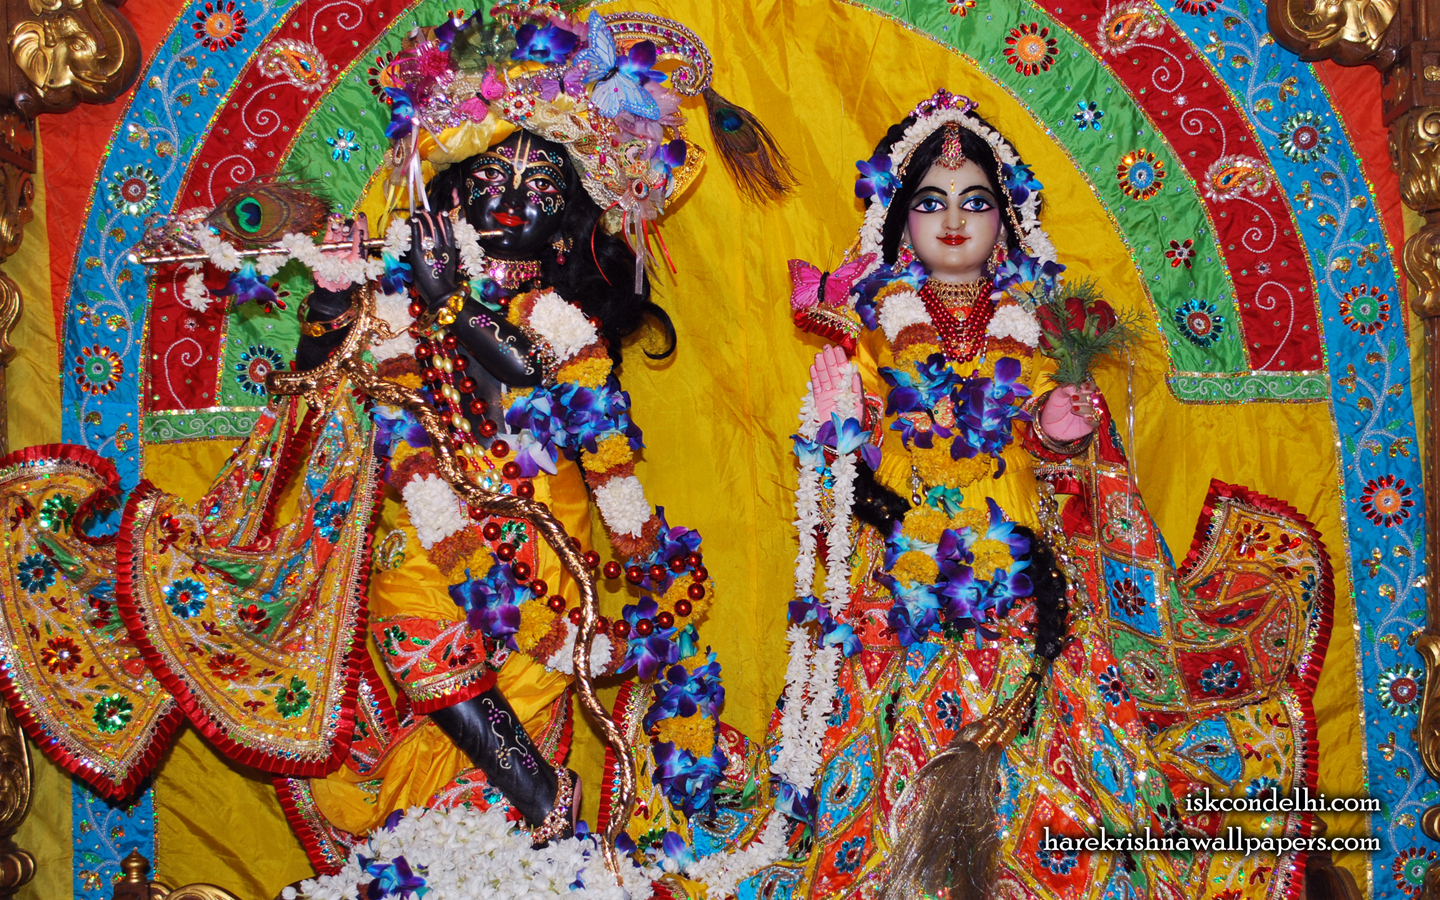 Sri Sri Radha Parthasarathi Wallpaper (012) Size 1440x900 Download